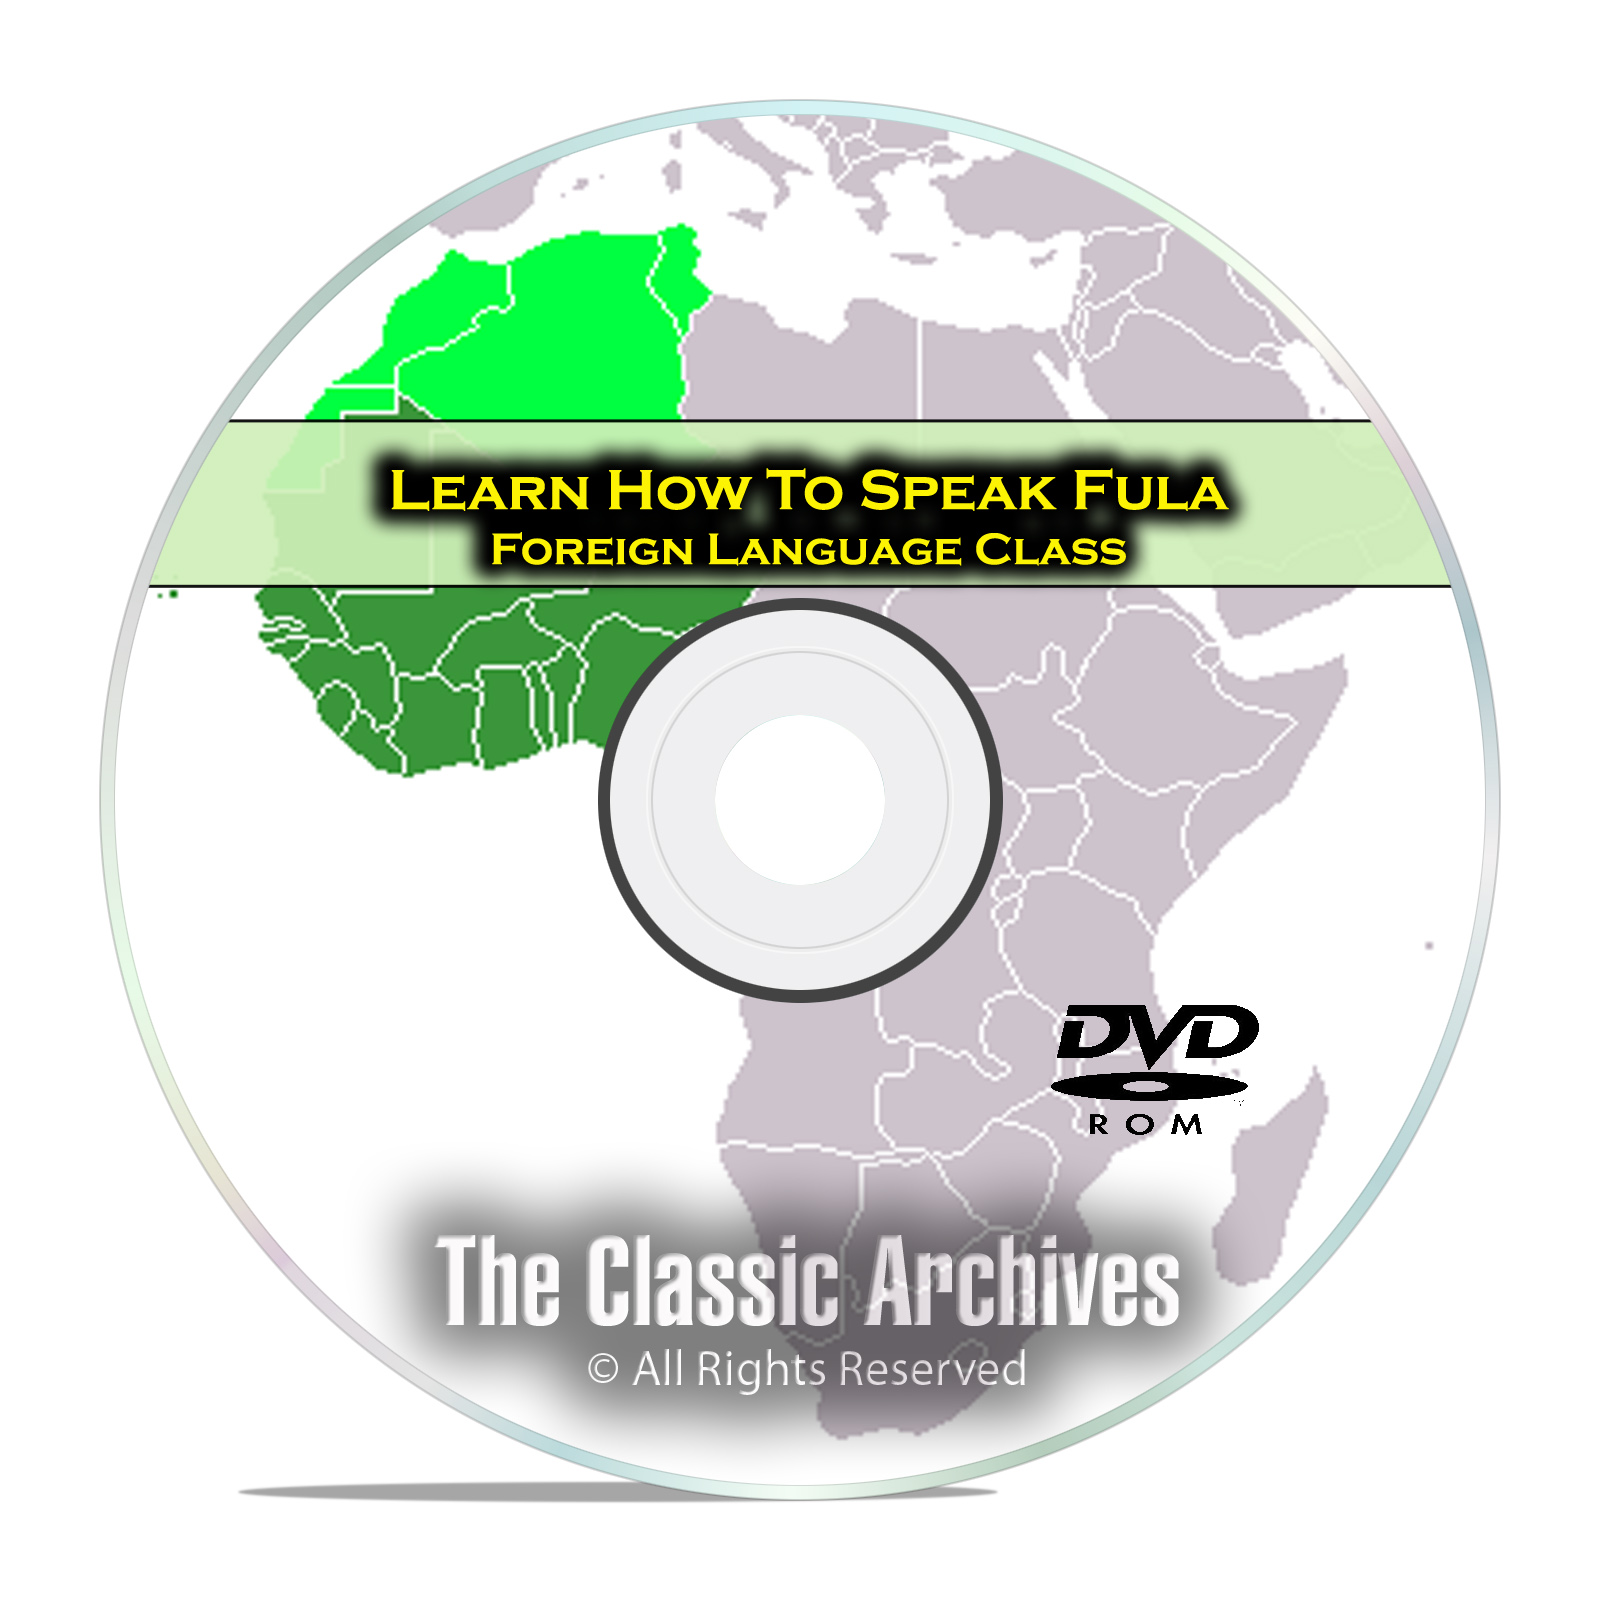 Learn How To Speak Fula, Fast & Easy Foreign Language Training Course, DVD